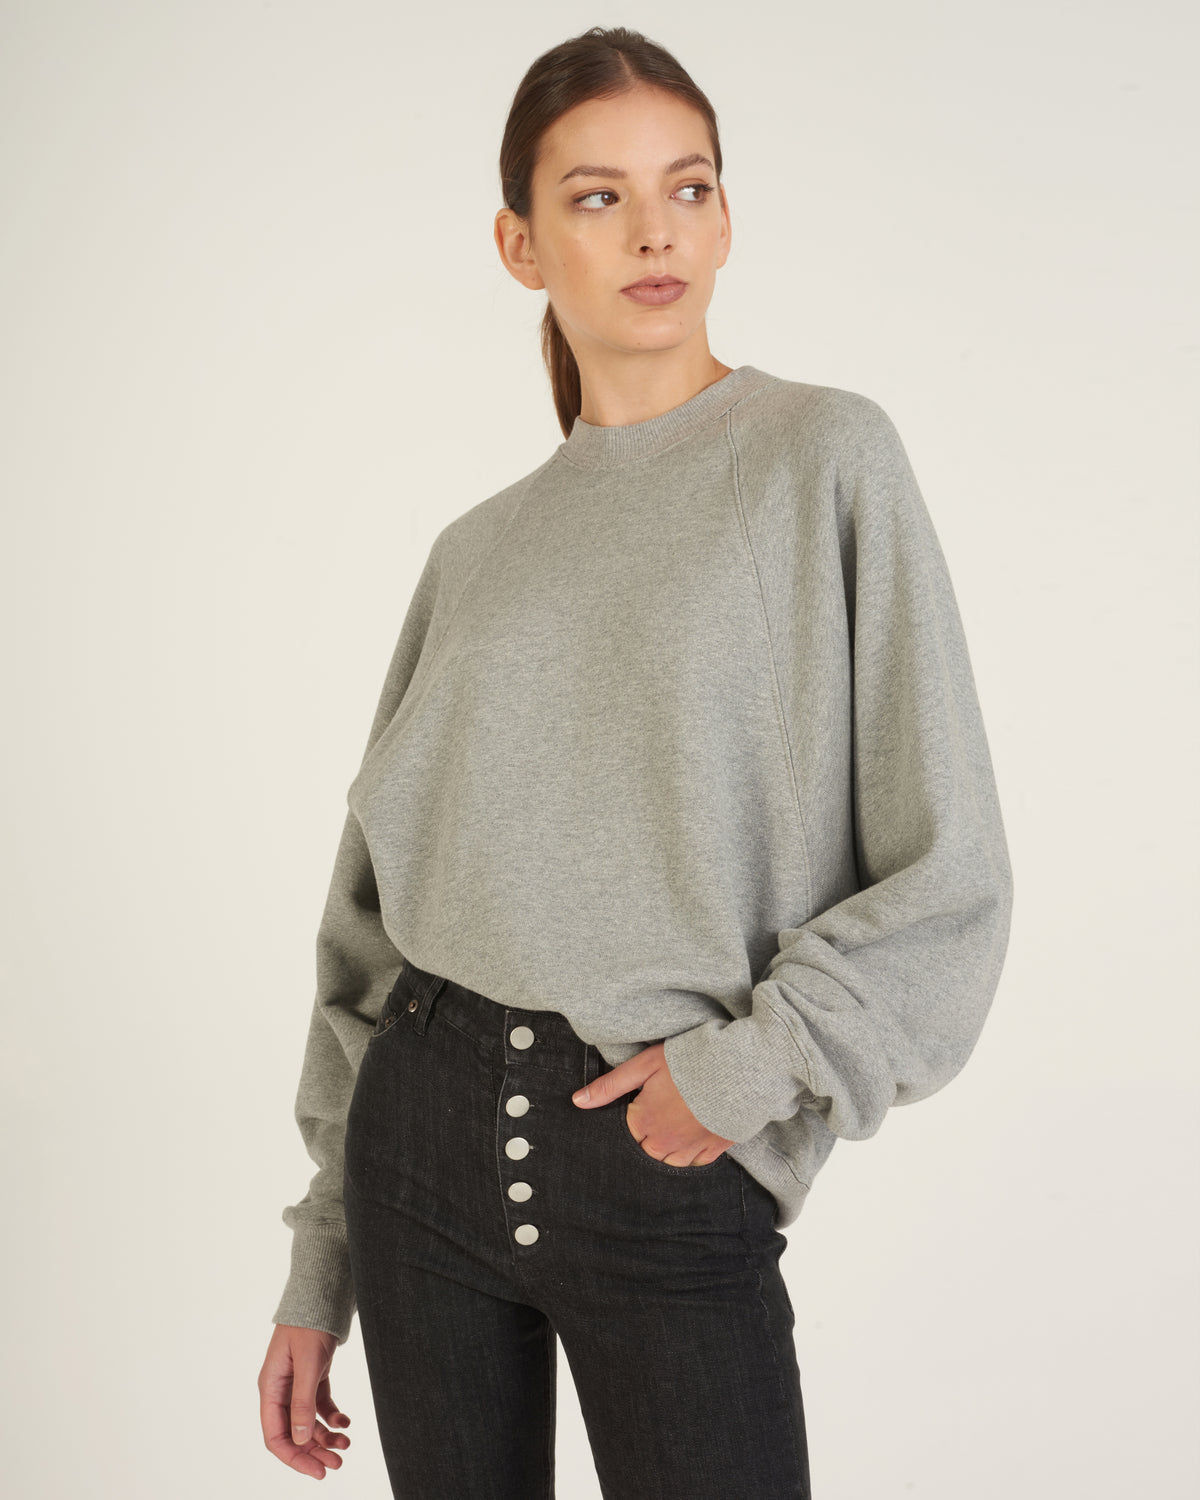 So Uptight Drop Raglan French Terry Sweatshirt in Heather Grey